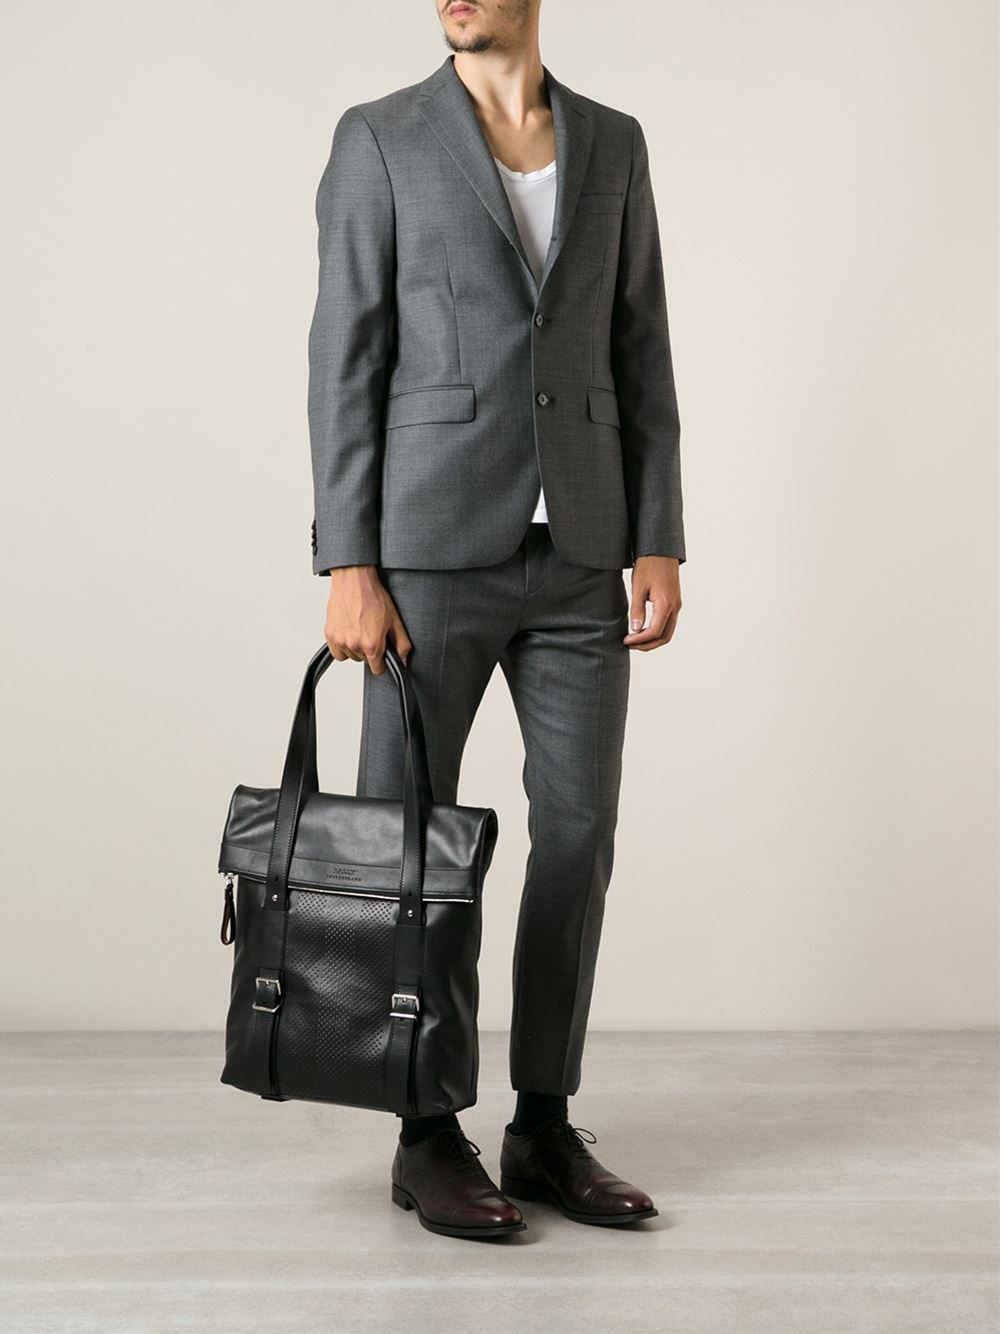 Bally Punched Leather Tote Bag in Black for Men | Lyst